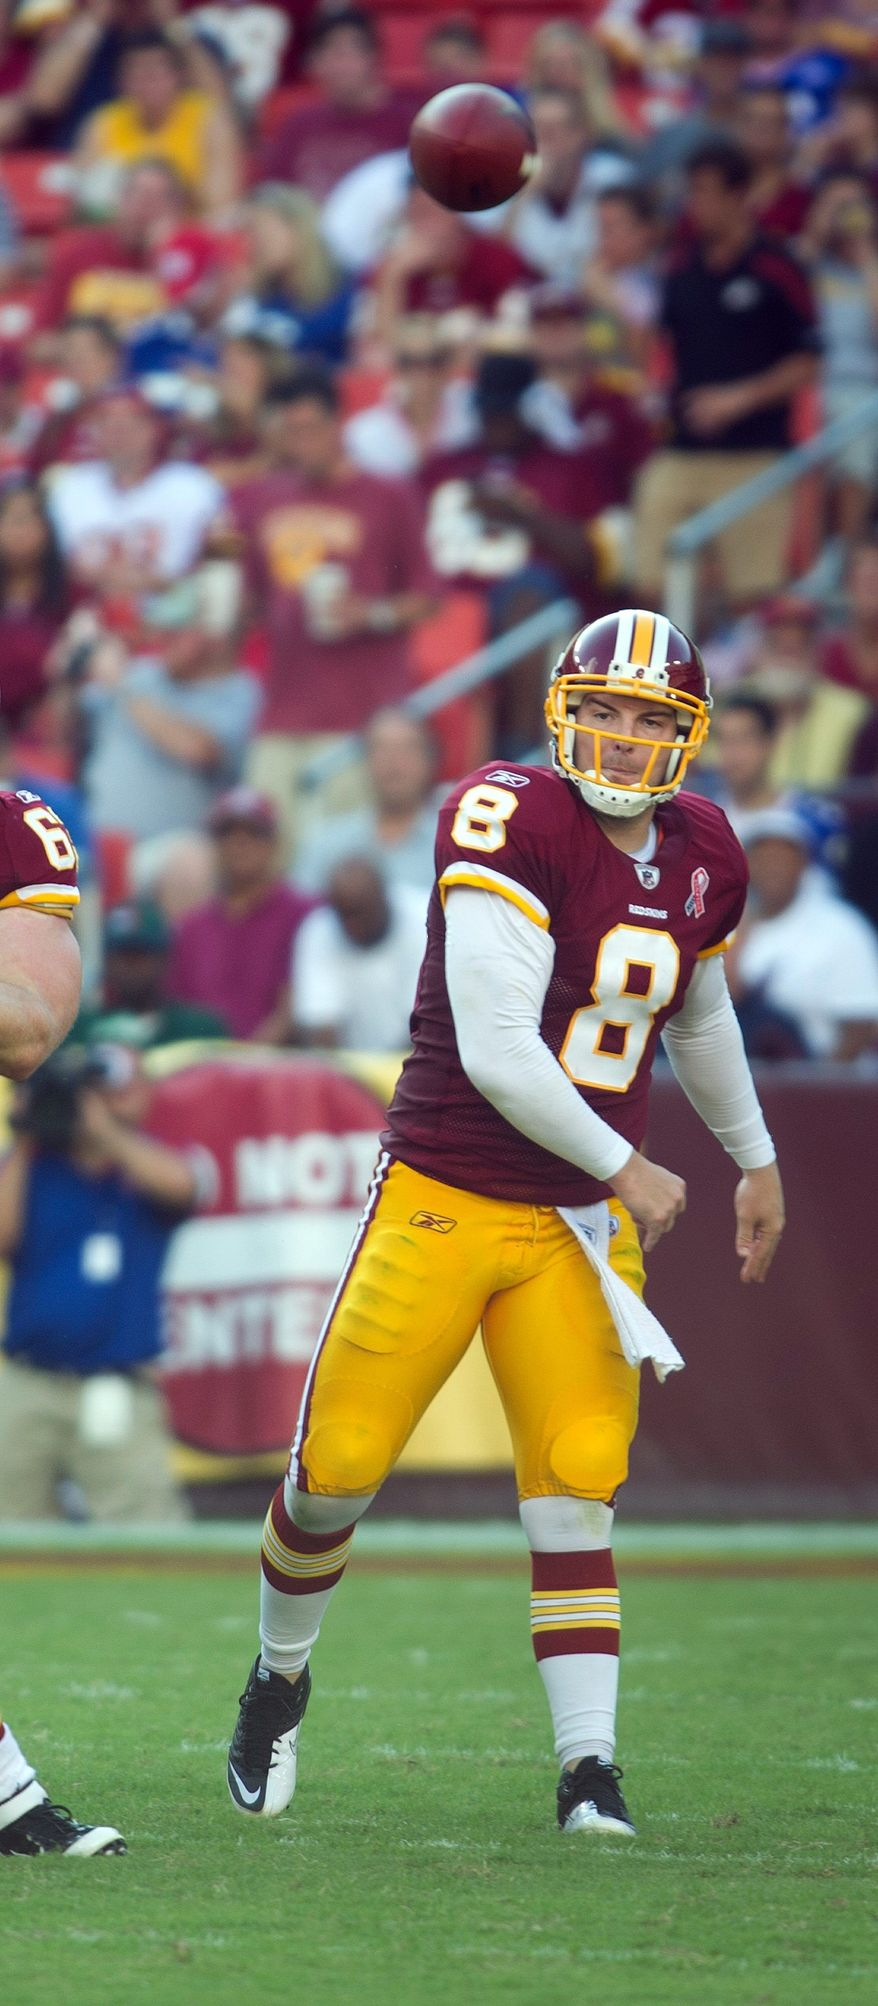 The Redskins, behind quarterback Rex Grossman, were one of 14 teams with at least 300 yards passing in Week 1. New England, Carolina, Miami and New Orleans topped 400. (Rod Lamkey Jr./The Washington Times)